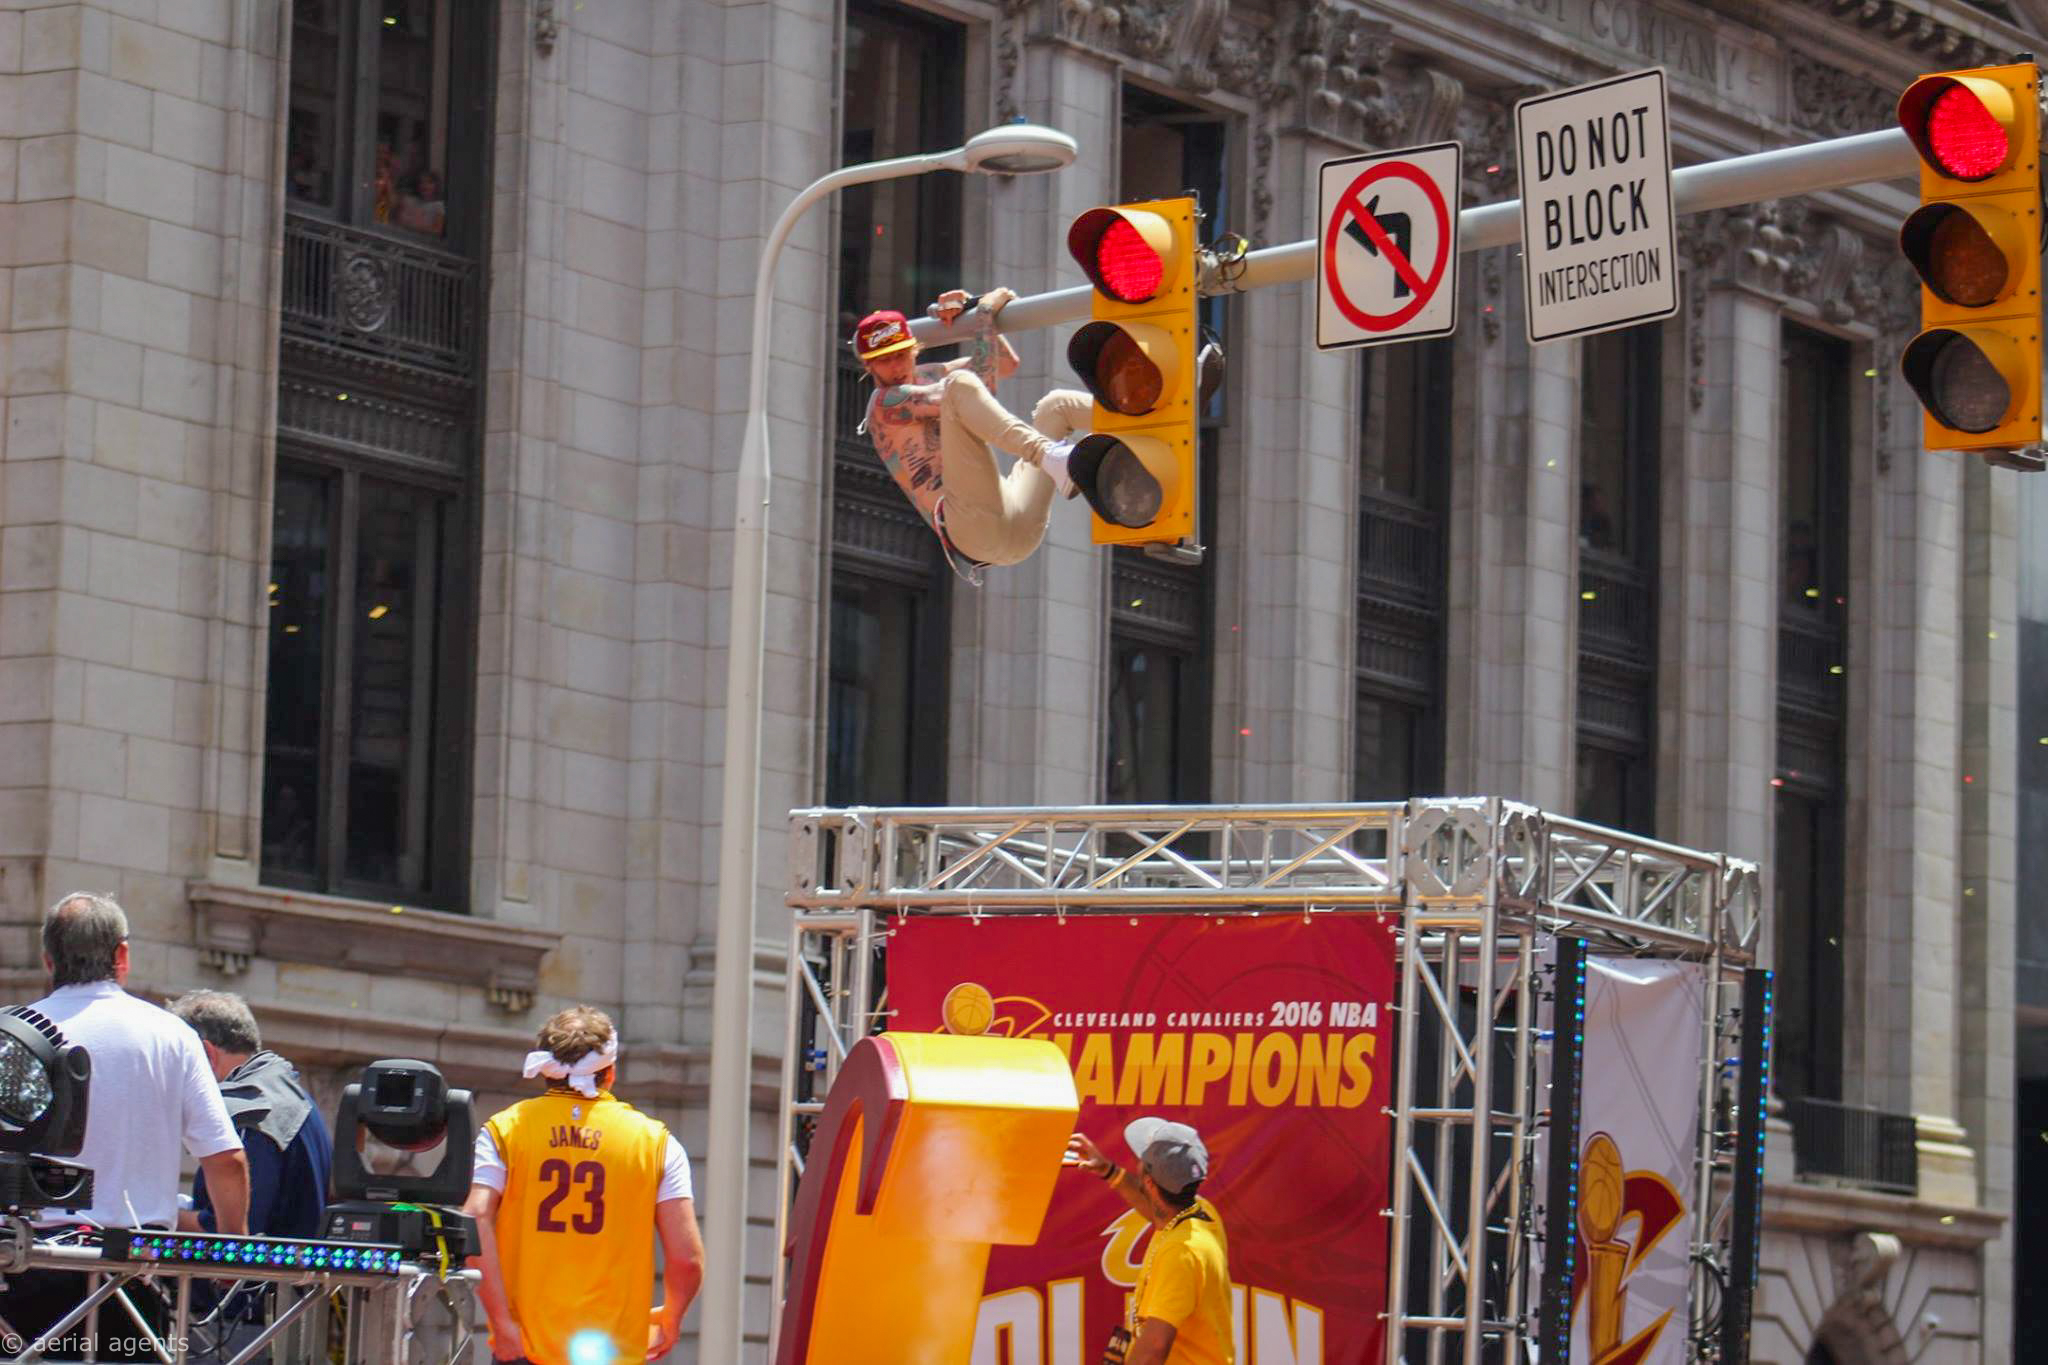 Machine Gun Kelly getting wild at the Cavs Parade.